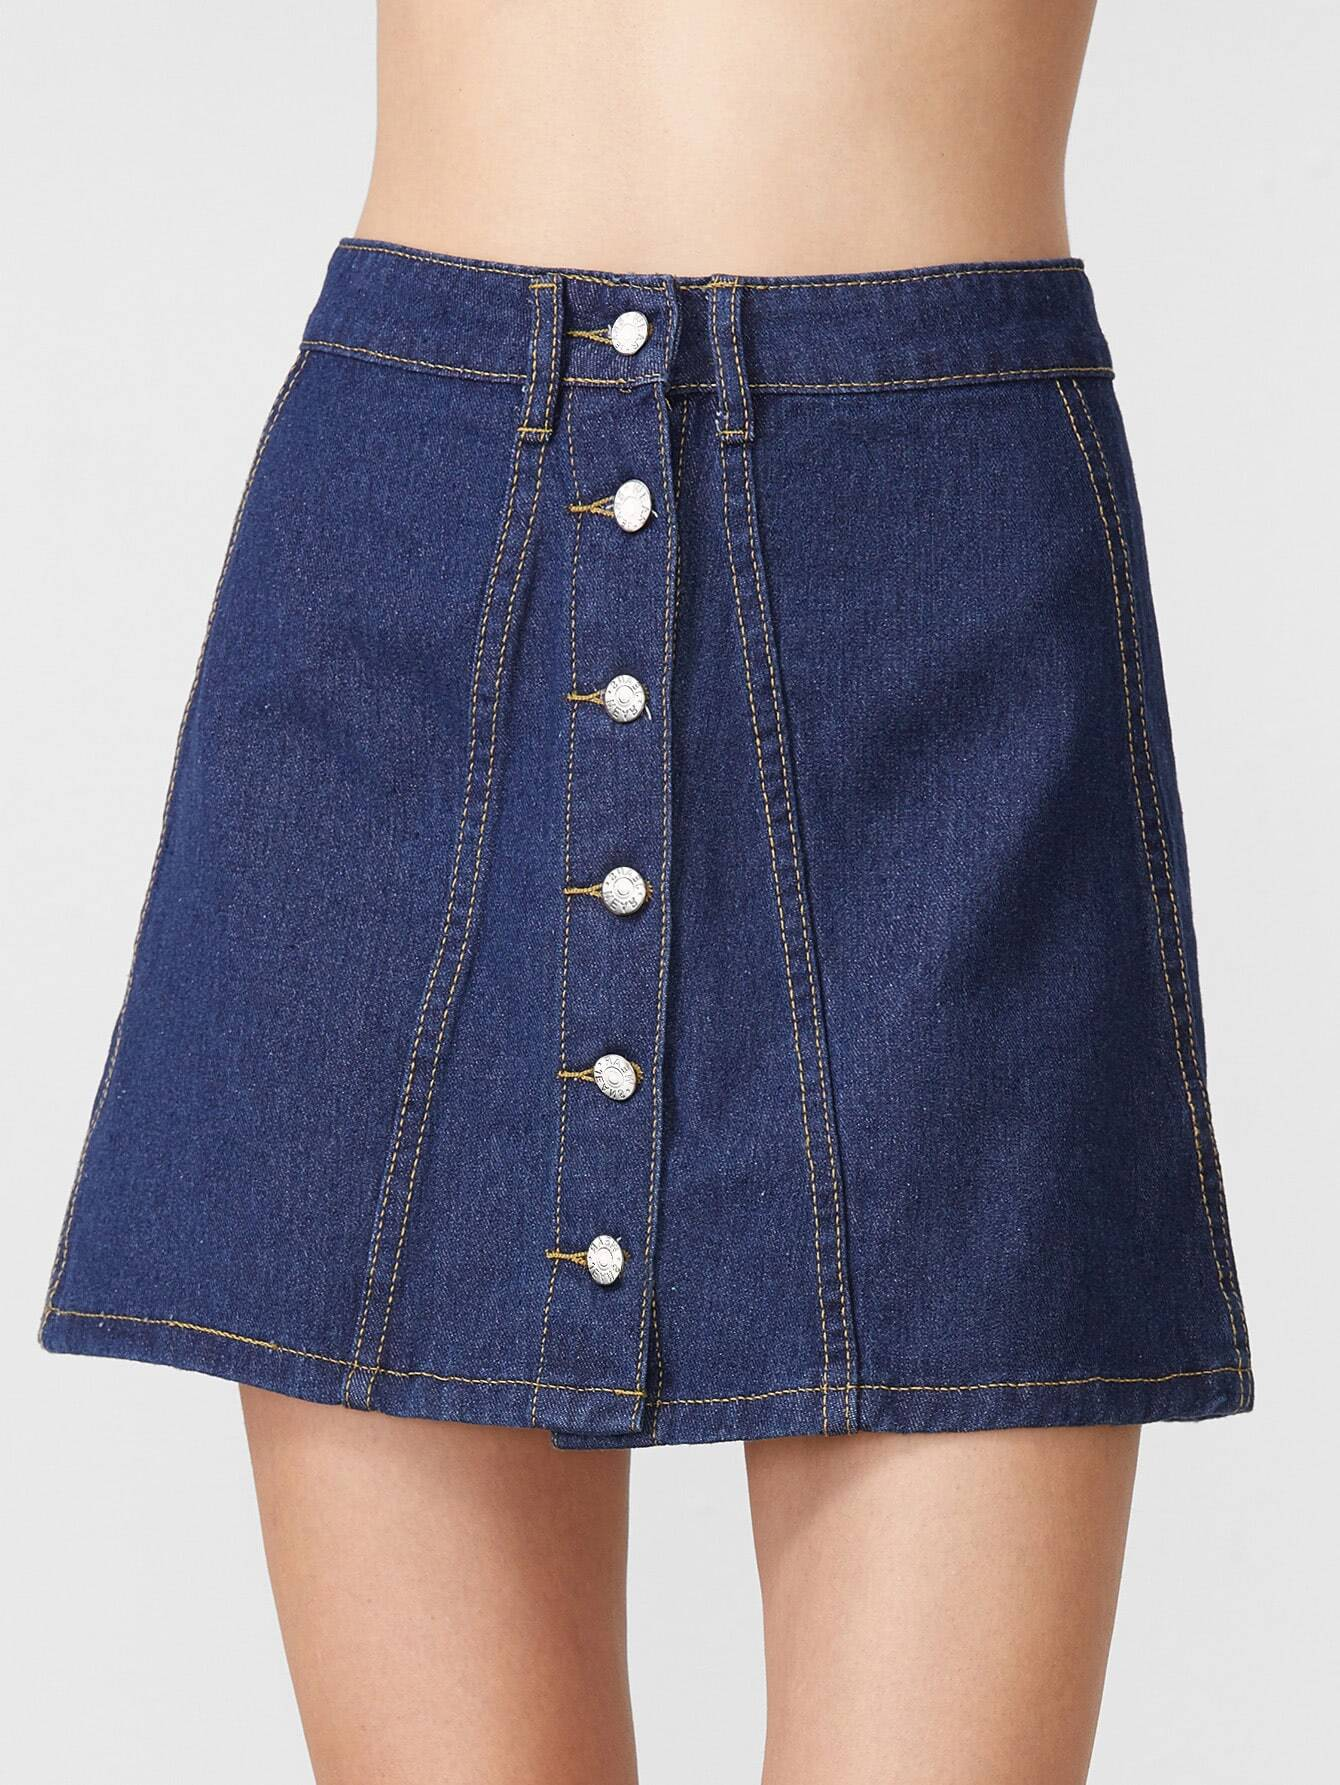 Deep Blue Single Breasted A Line Denim Skirt